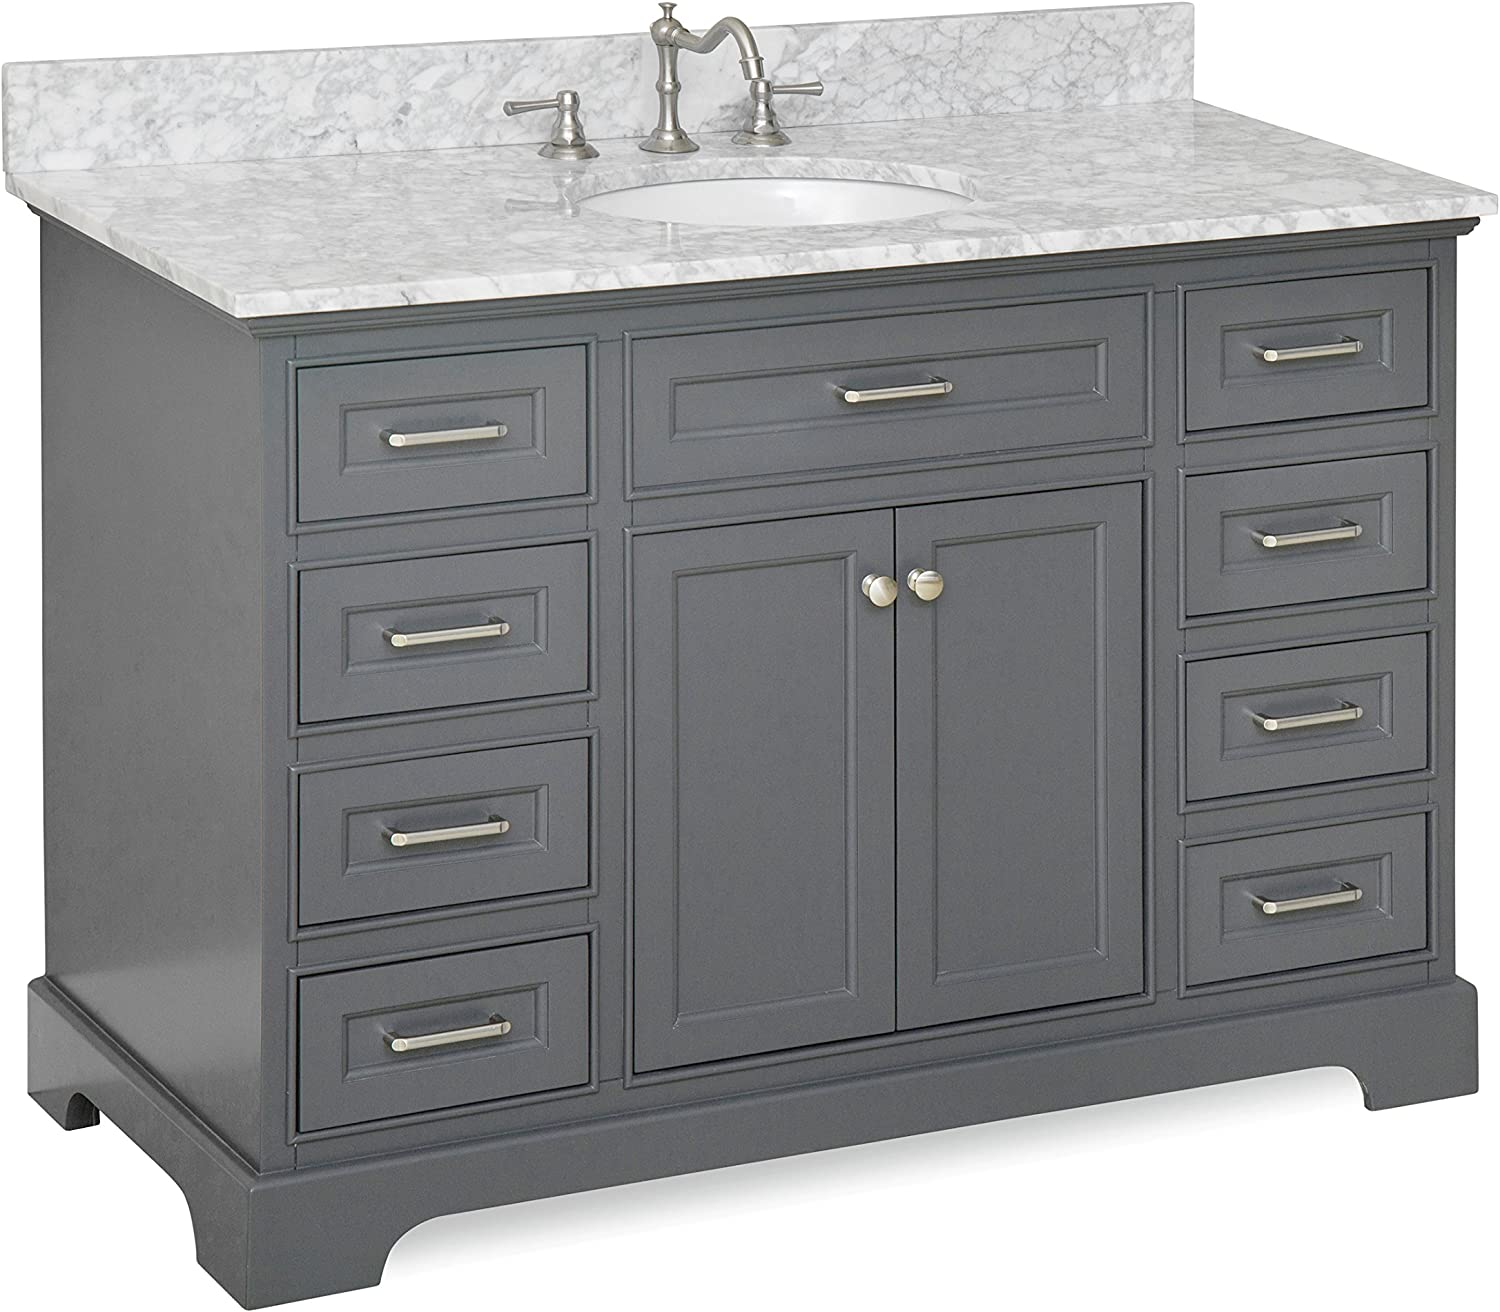 Amazon Com Aria 48 Inch Bathroom Vanity Carrara Charcoal Gray Includes Charcoal Gray Cabinet With Authentic Italian Carrara Marble Countertop And White Ceramic Sink Home Improvement